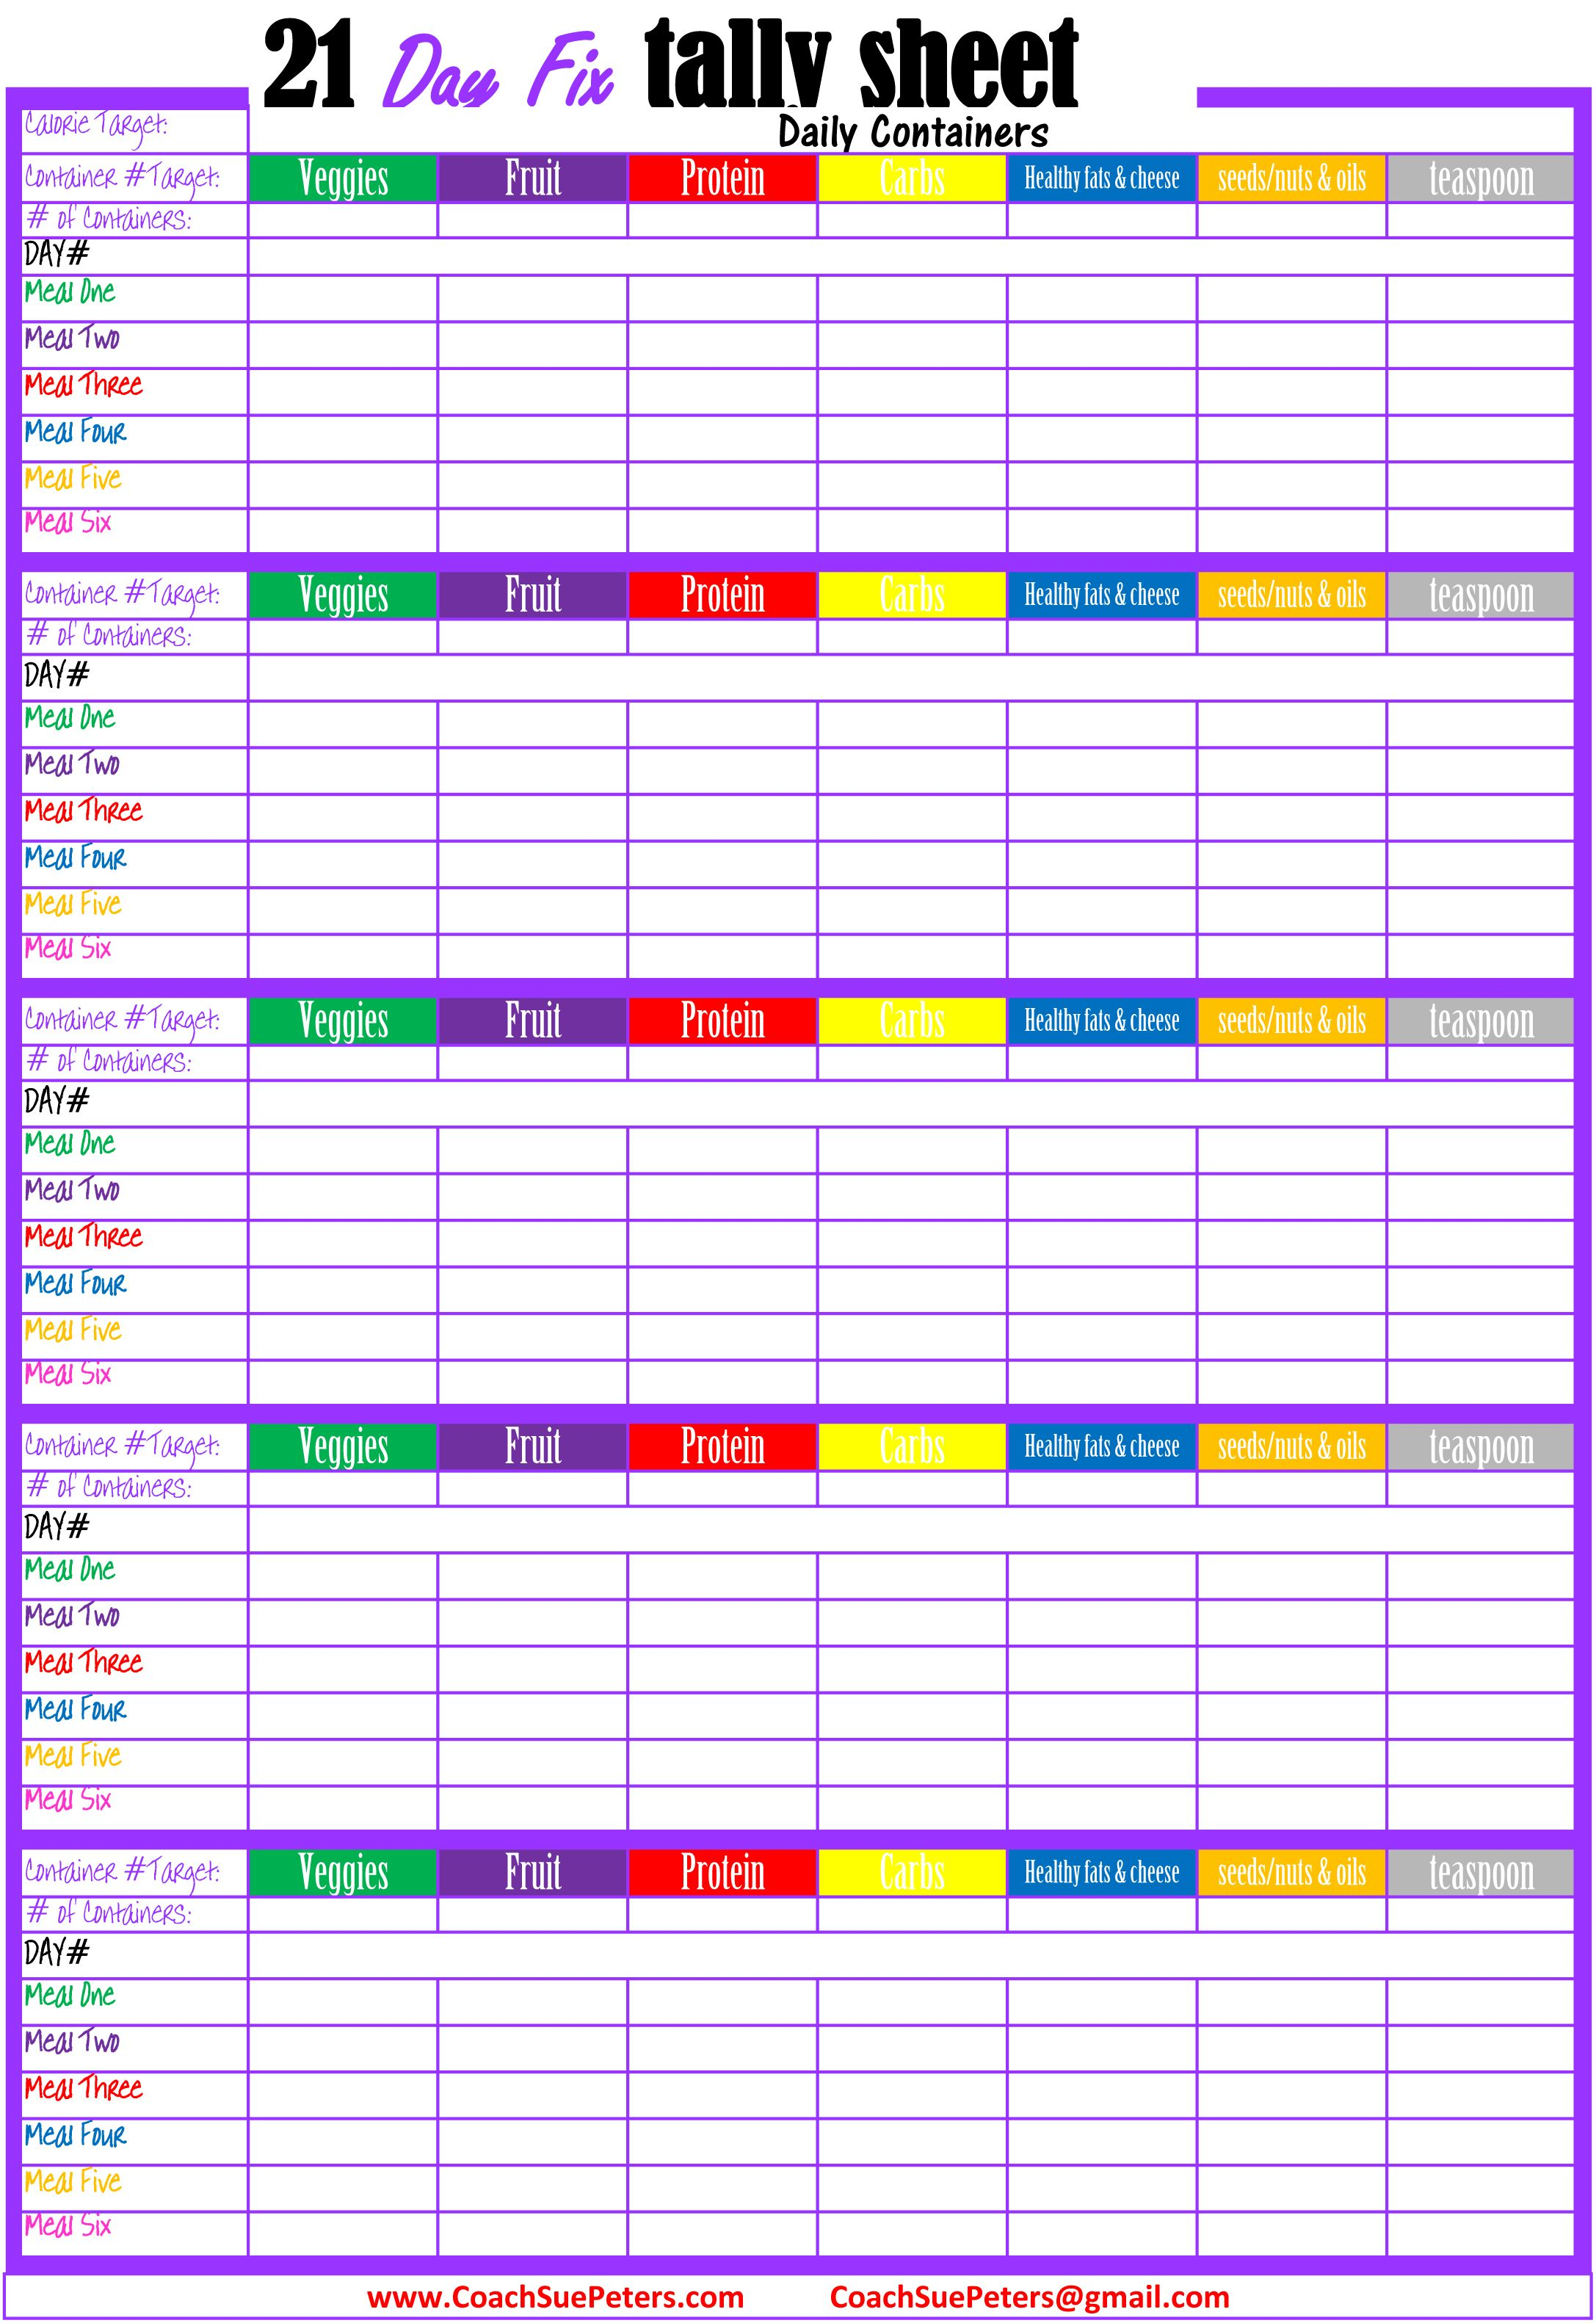 Revered image with 21 day fix tally sheets printable